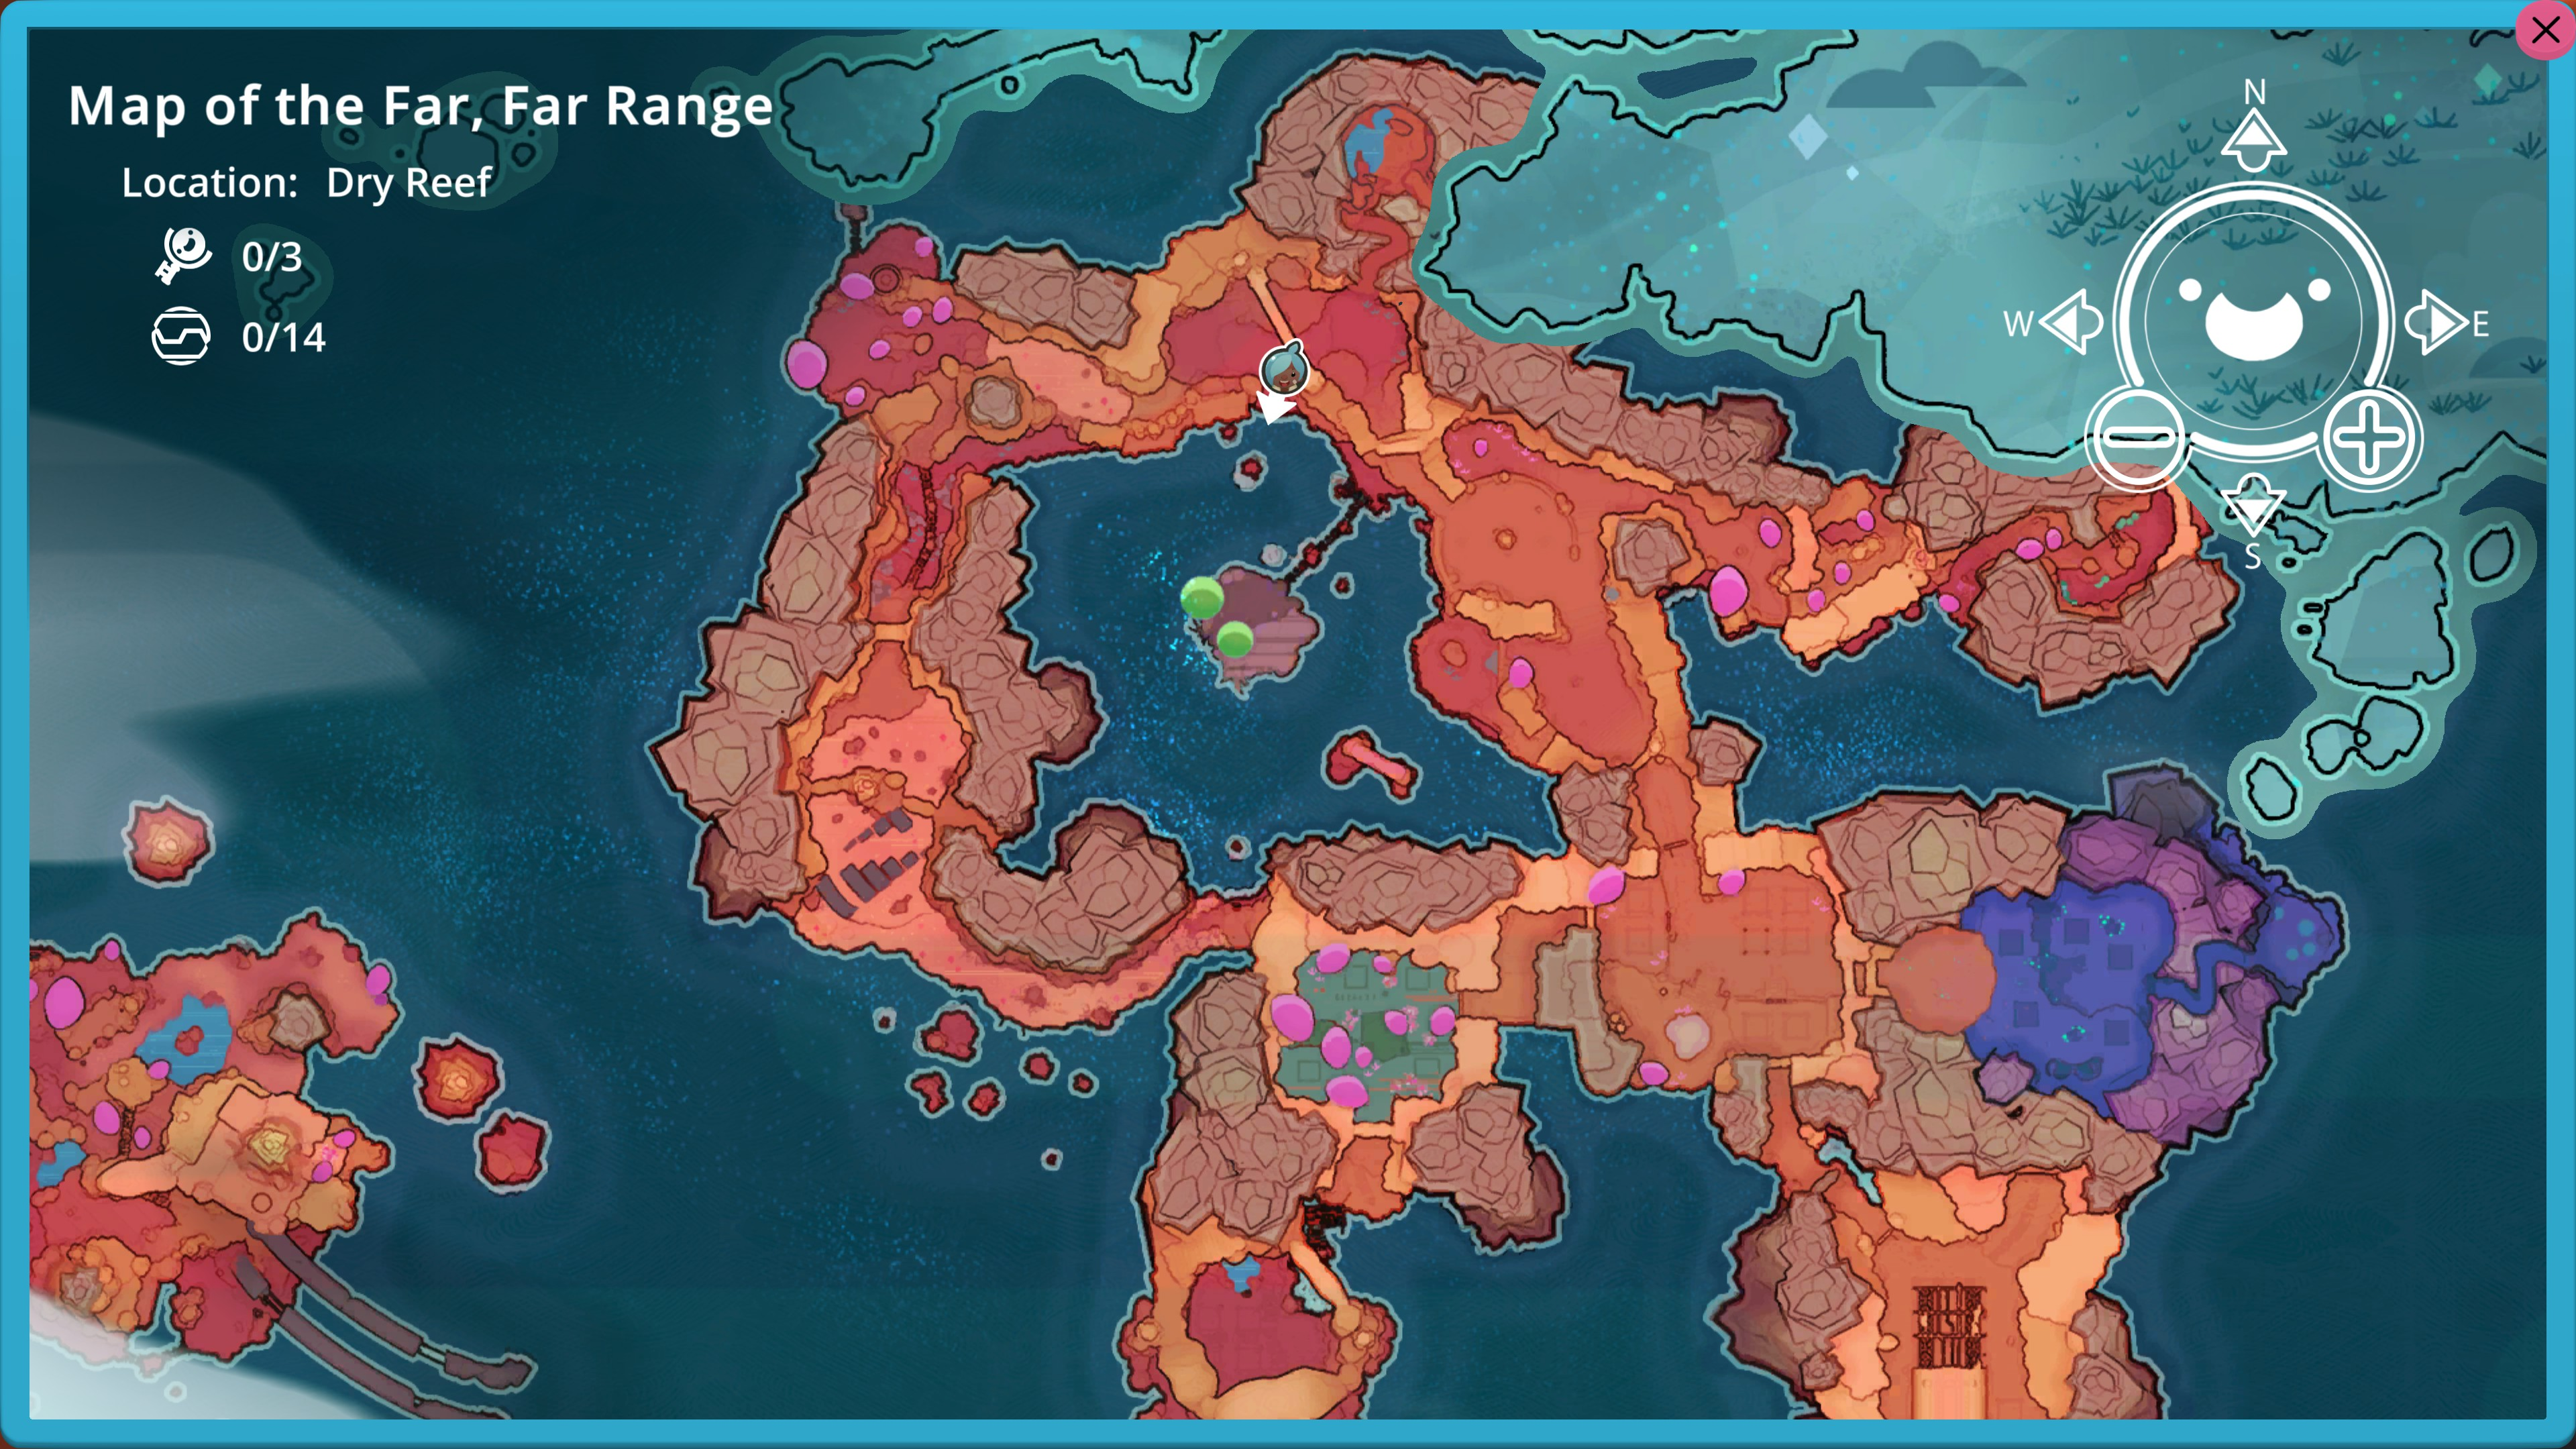 Map of the Far, Far Range. location is Dry Reef, outlined in orange. 3 keys and 14 capsules are listed for the area, but no icons appear on the map itself